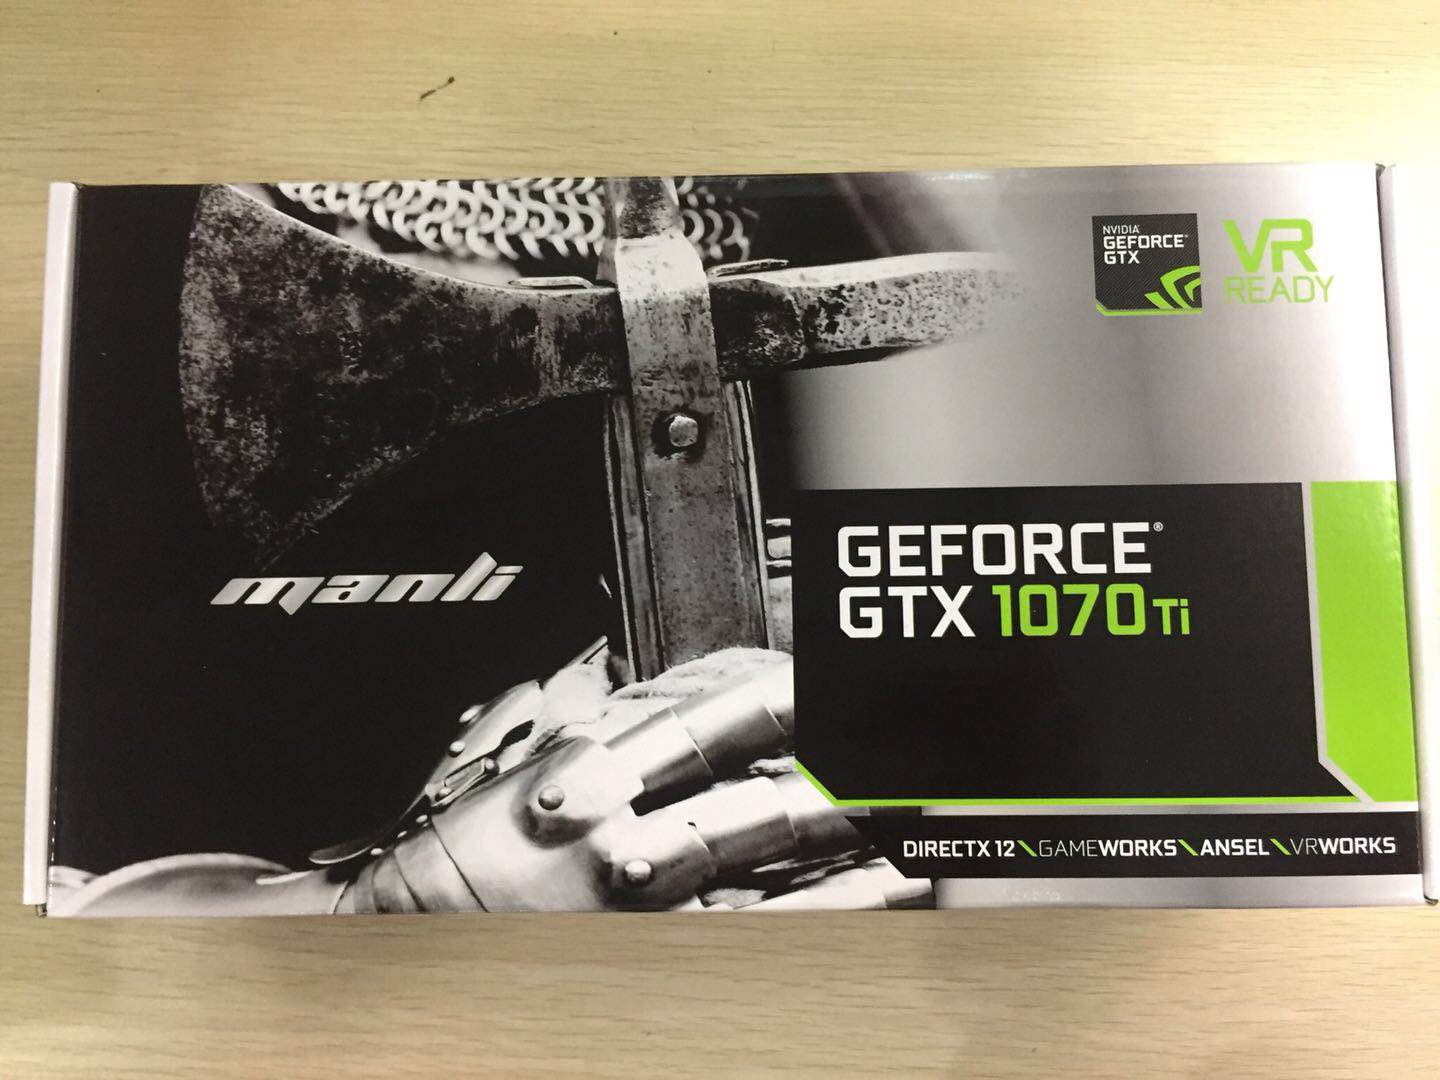 Manli GeFore GTX1070Ti 8GB 256Bit 180W Professional Mining Graphics Card